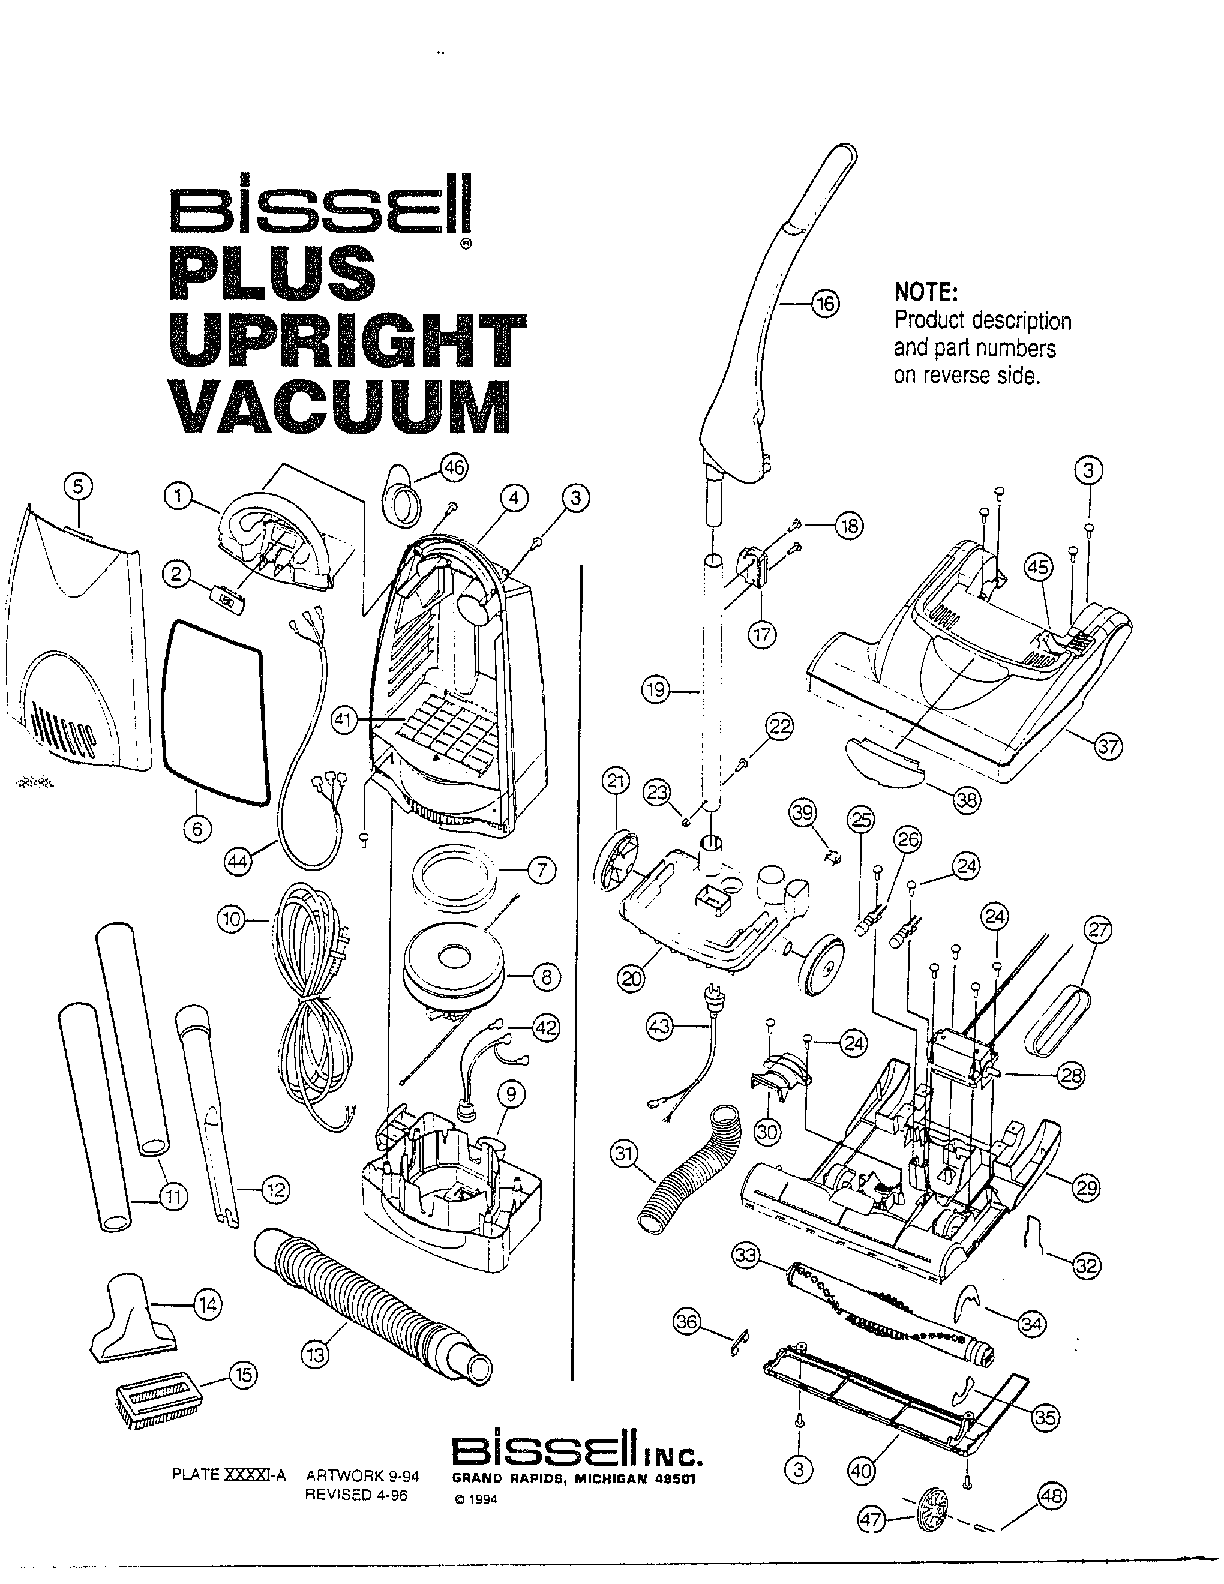 hight resolution of looking for bissell model 3553m upright vacuum repair replacement parts